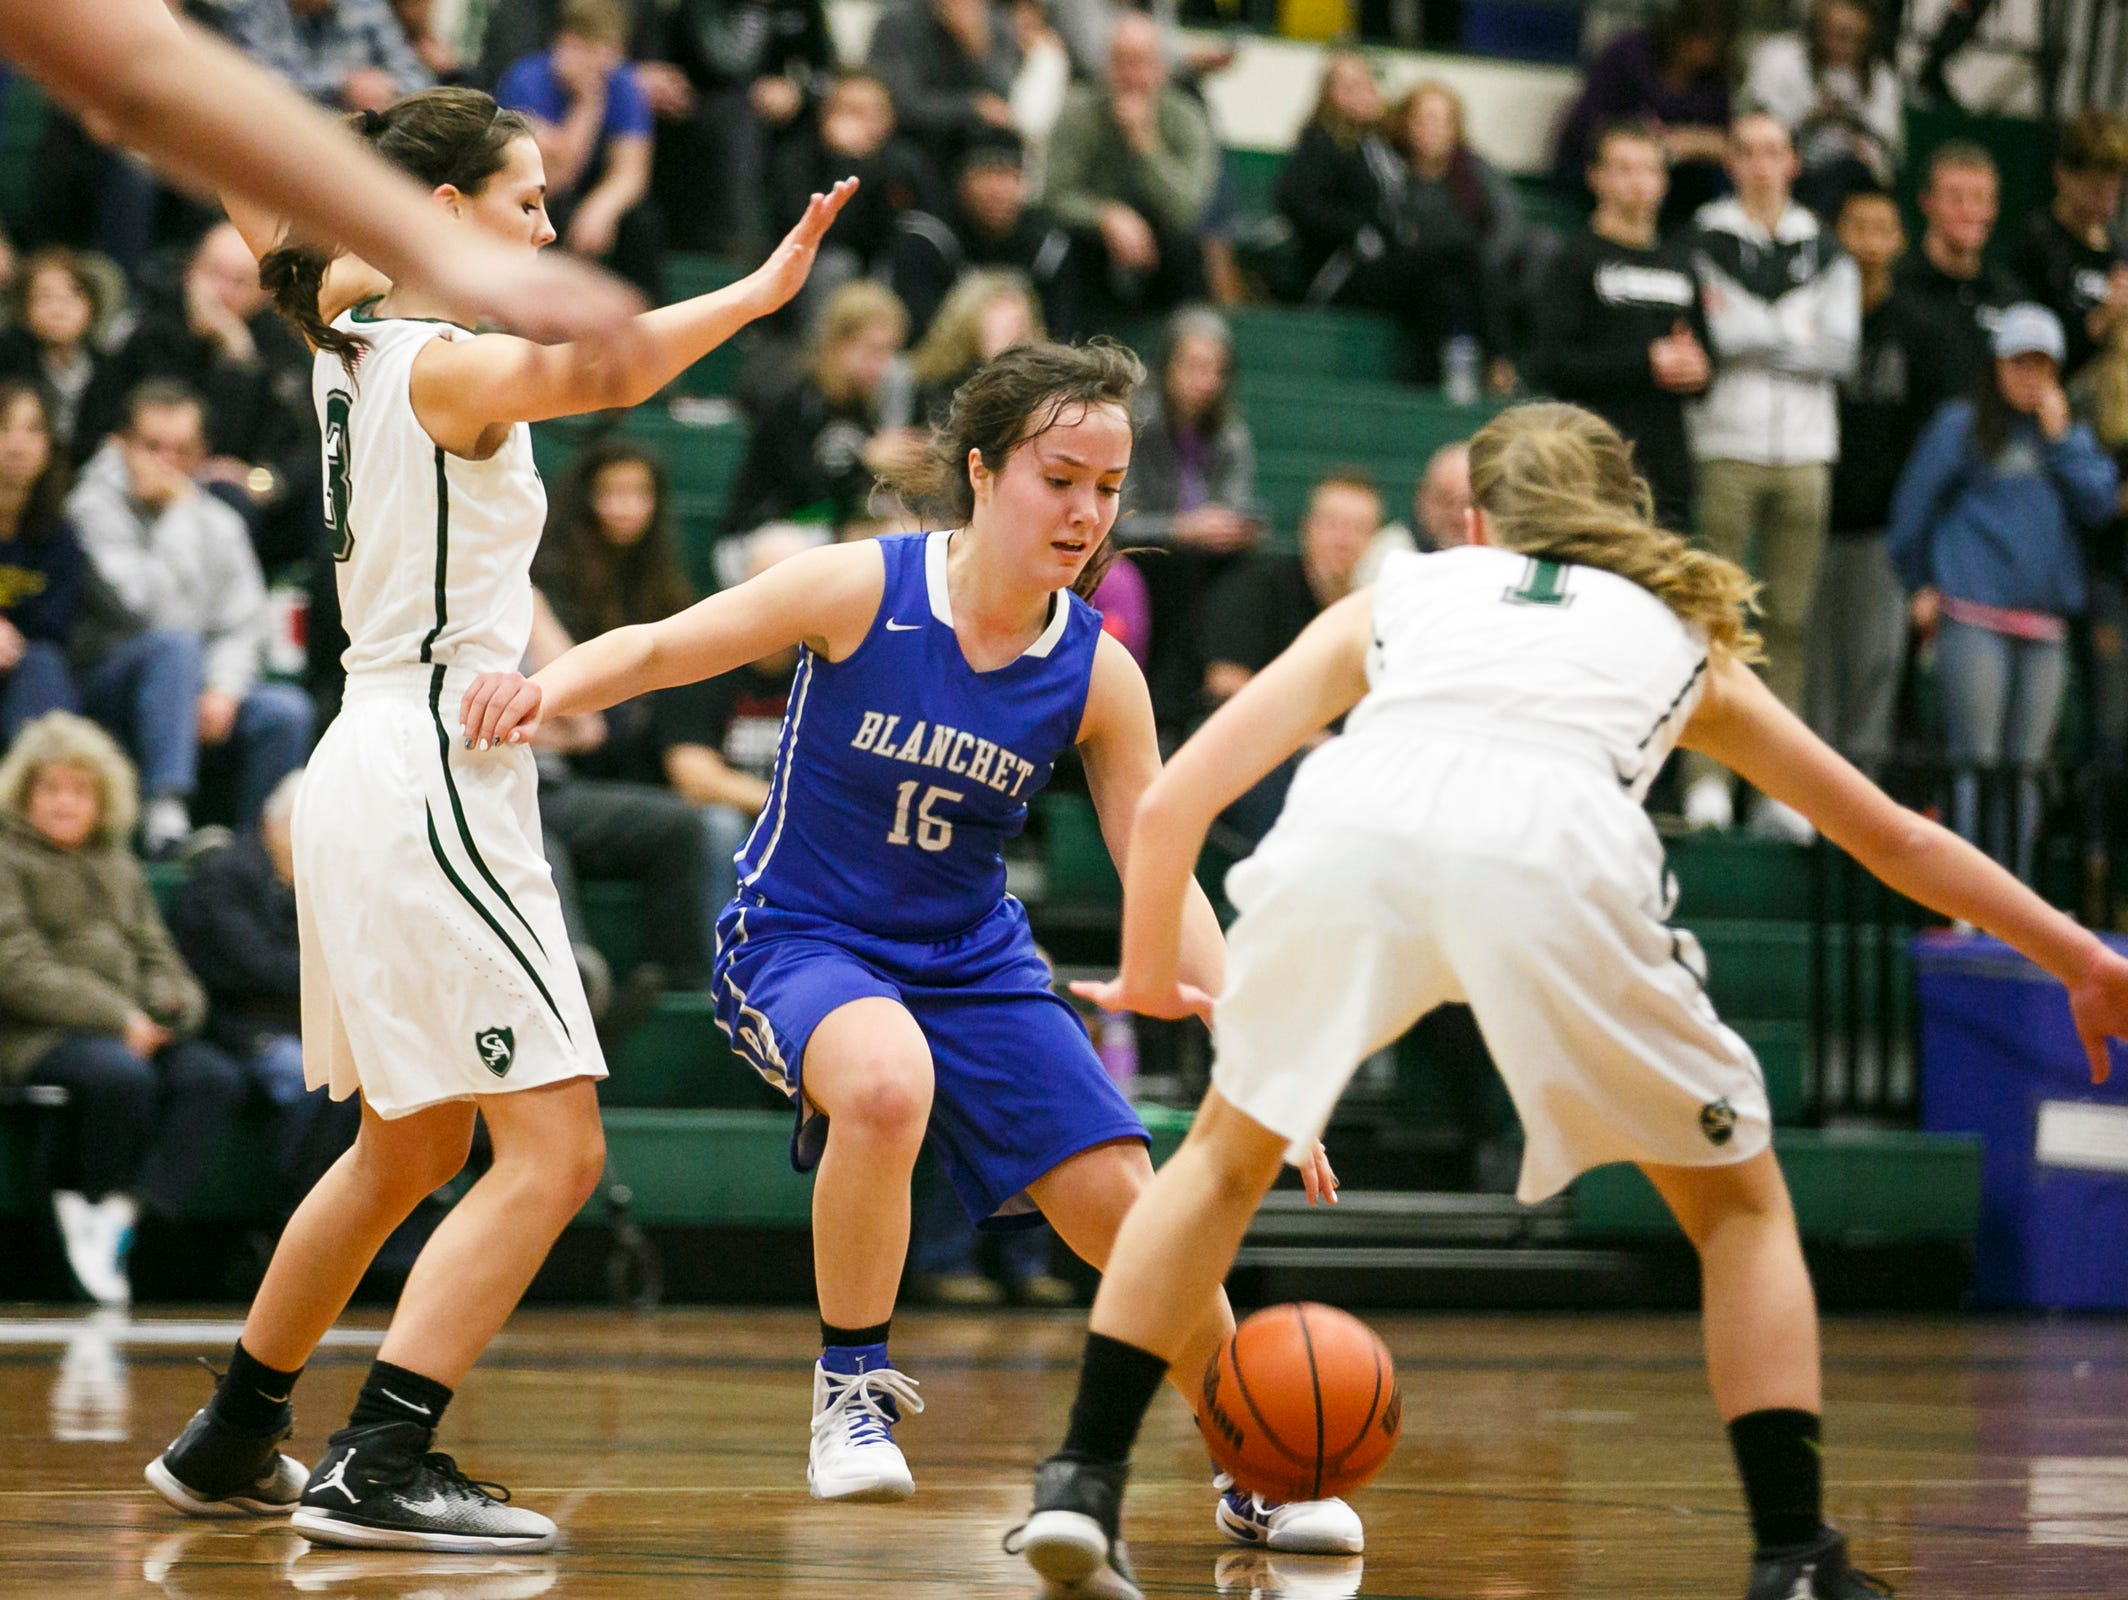 Blanchet's Sophia Poole (15) dribbles the ball around Salem Academy defense on Wednesday, Jan. 4, 2017 at Salem Academy. No. 4-ranked Blanchet defeated No. 1 Salem Academy 42-40 in the PacWest Conference game.